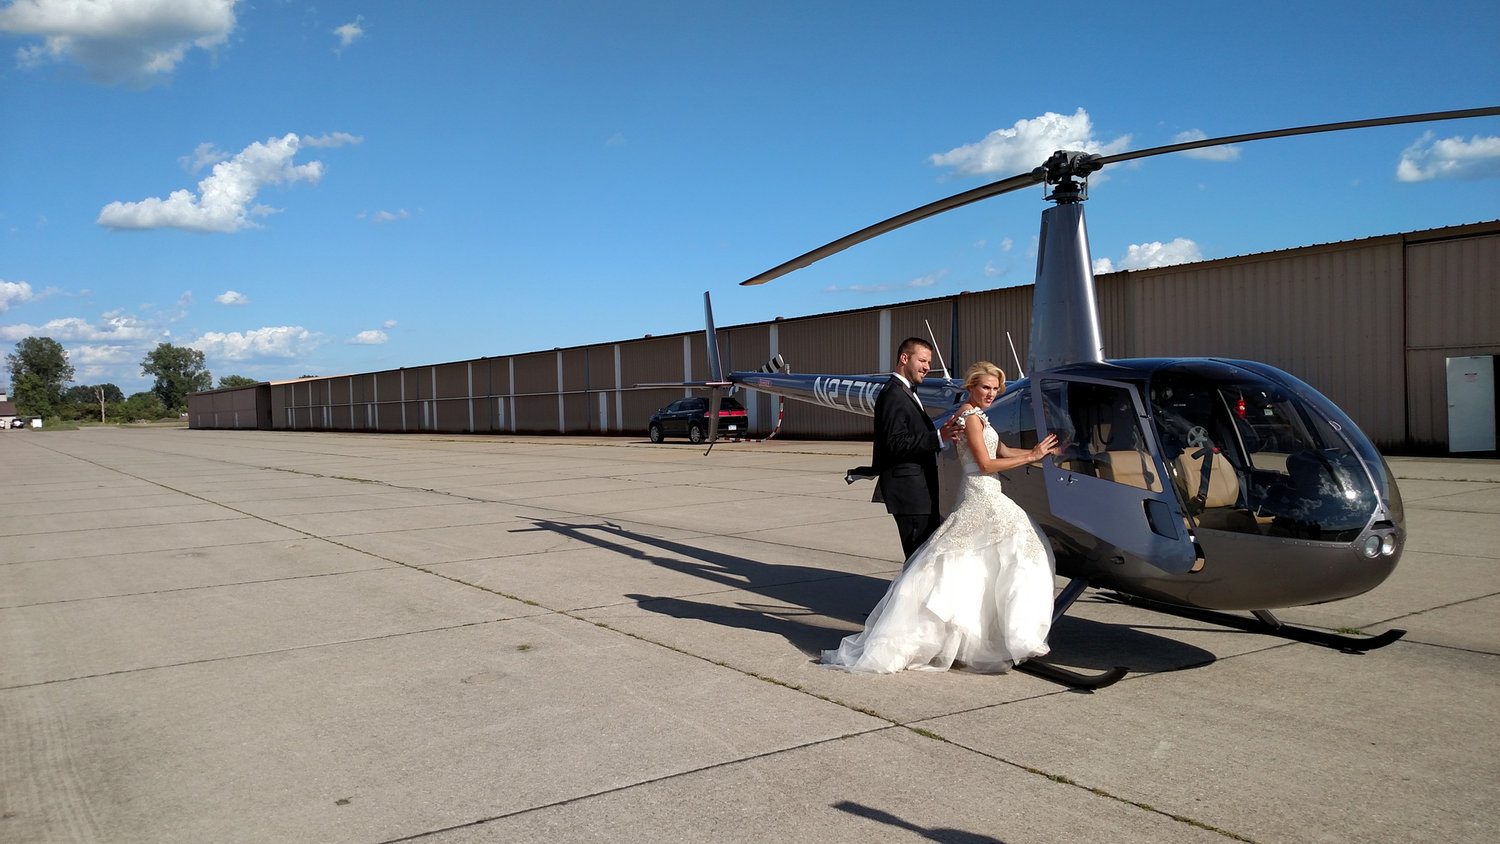 Rome helicopter tour wedding 2.jpg